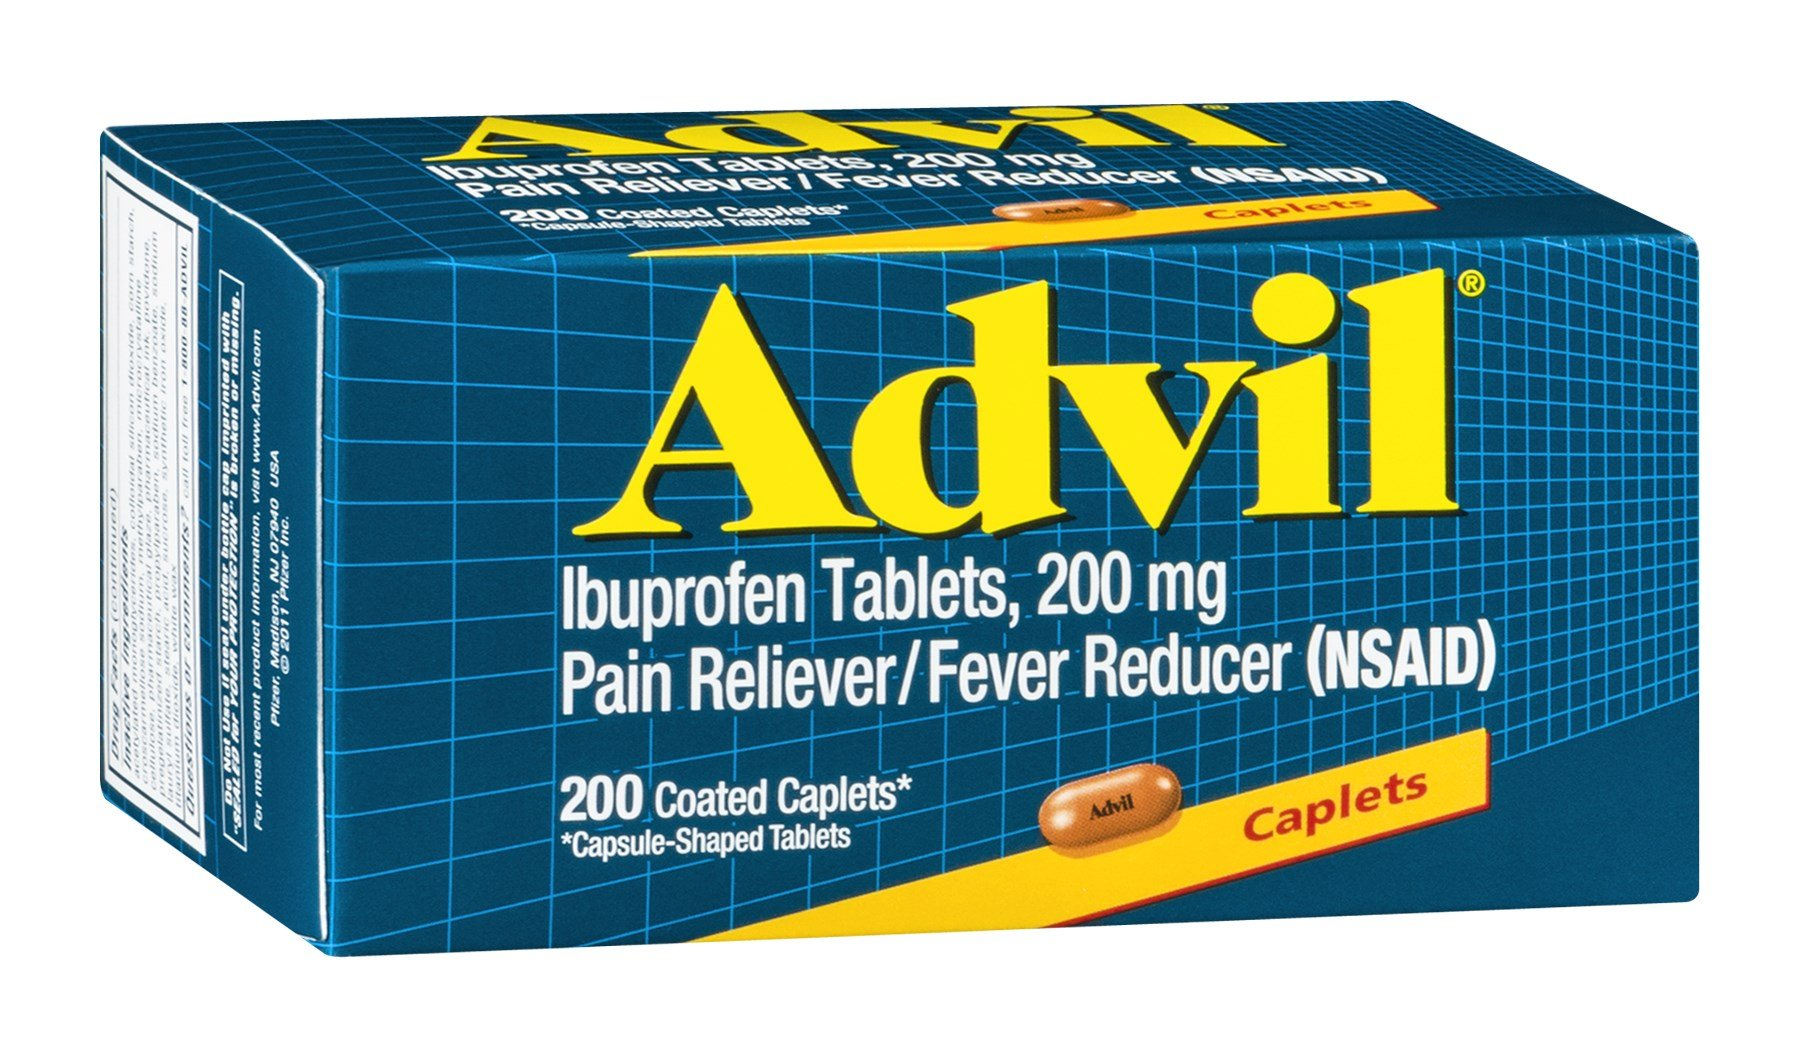 Advil Ibuprofen Caplets by Advil